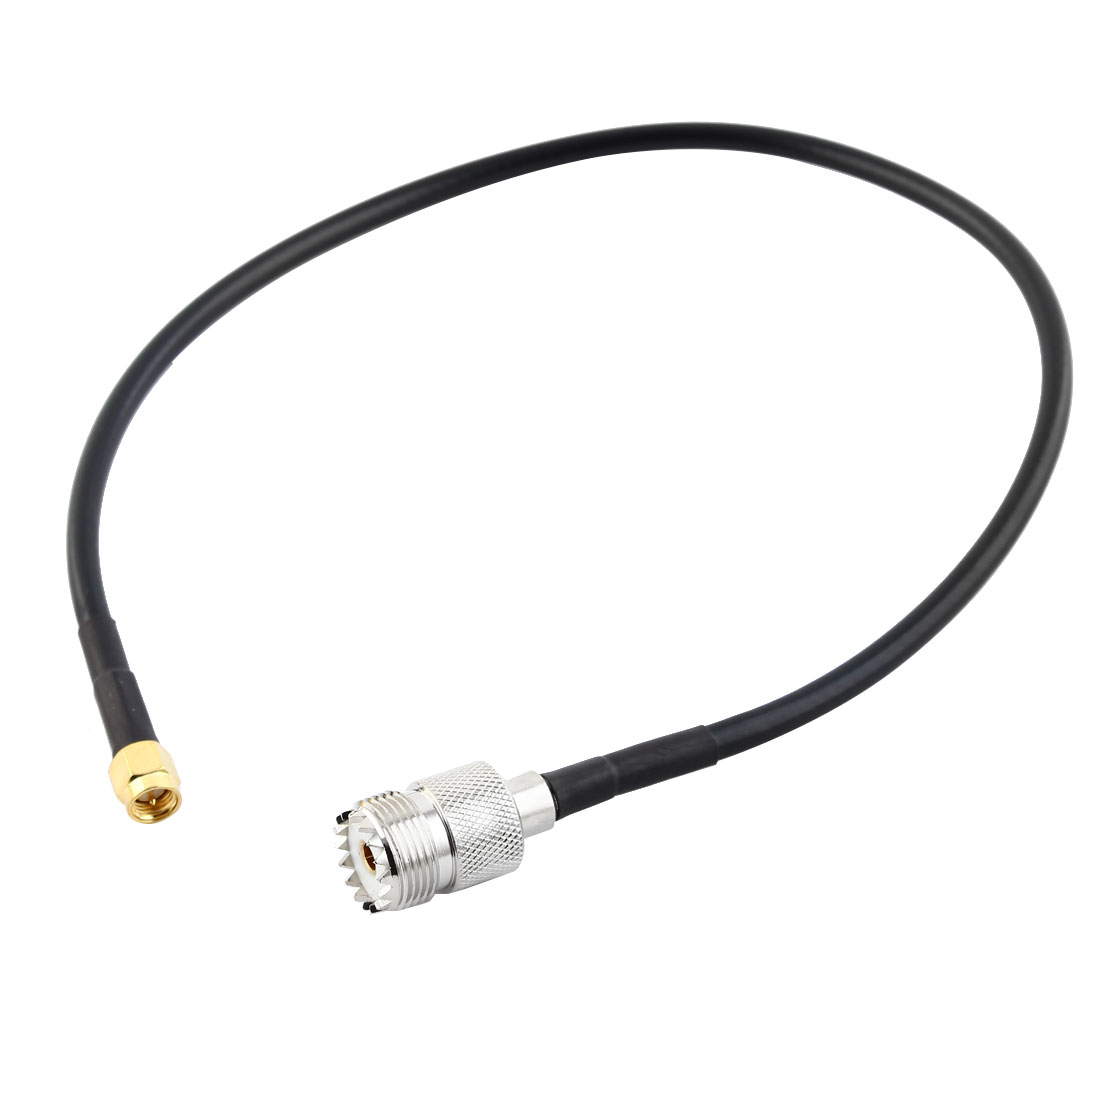 SMA-Male-to-UHF-Female-Connector-Pigtail-Cable-Black-40CM